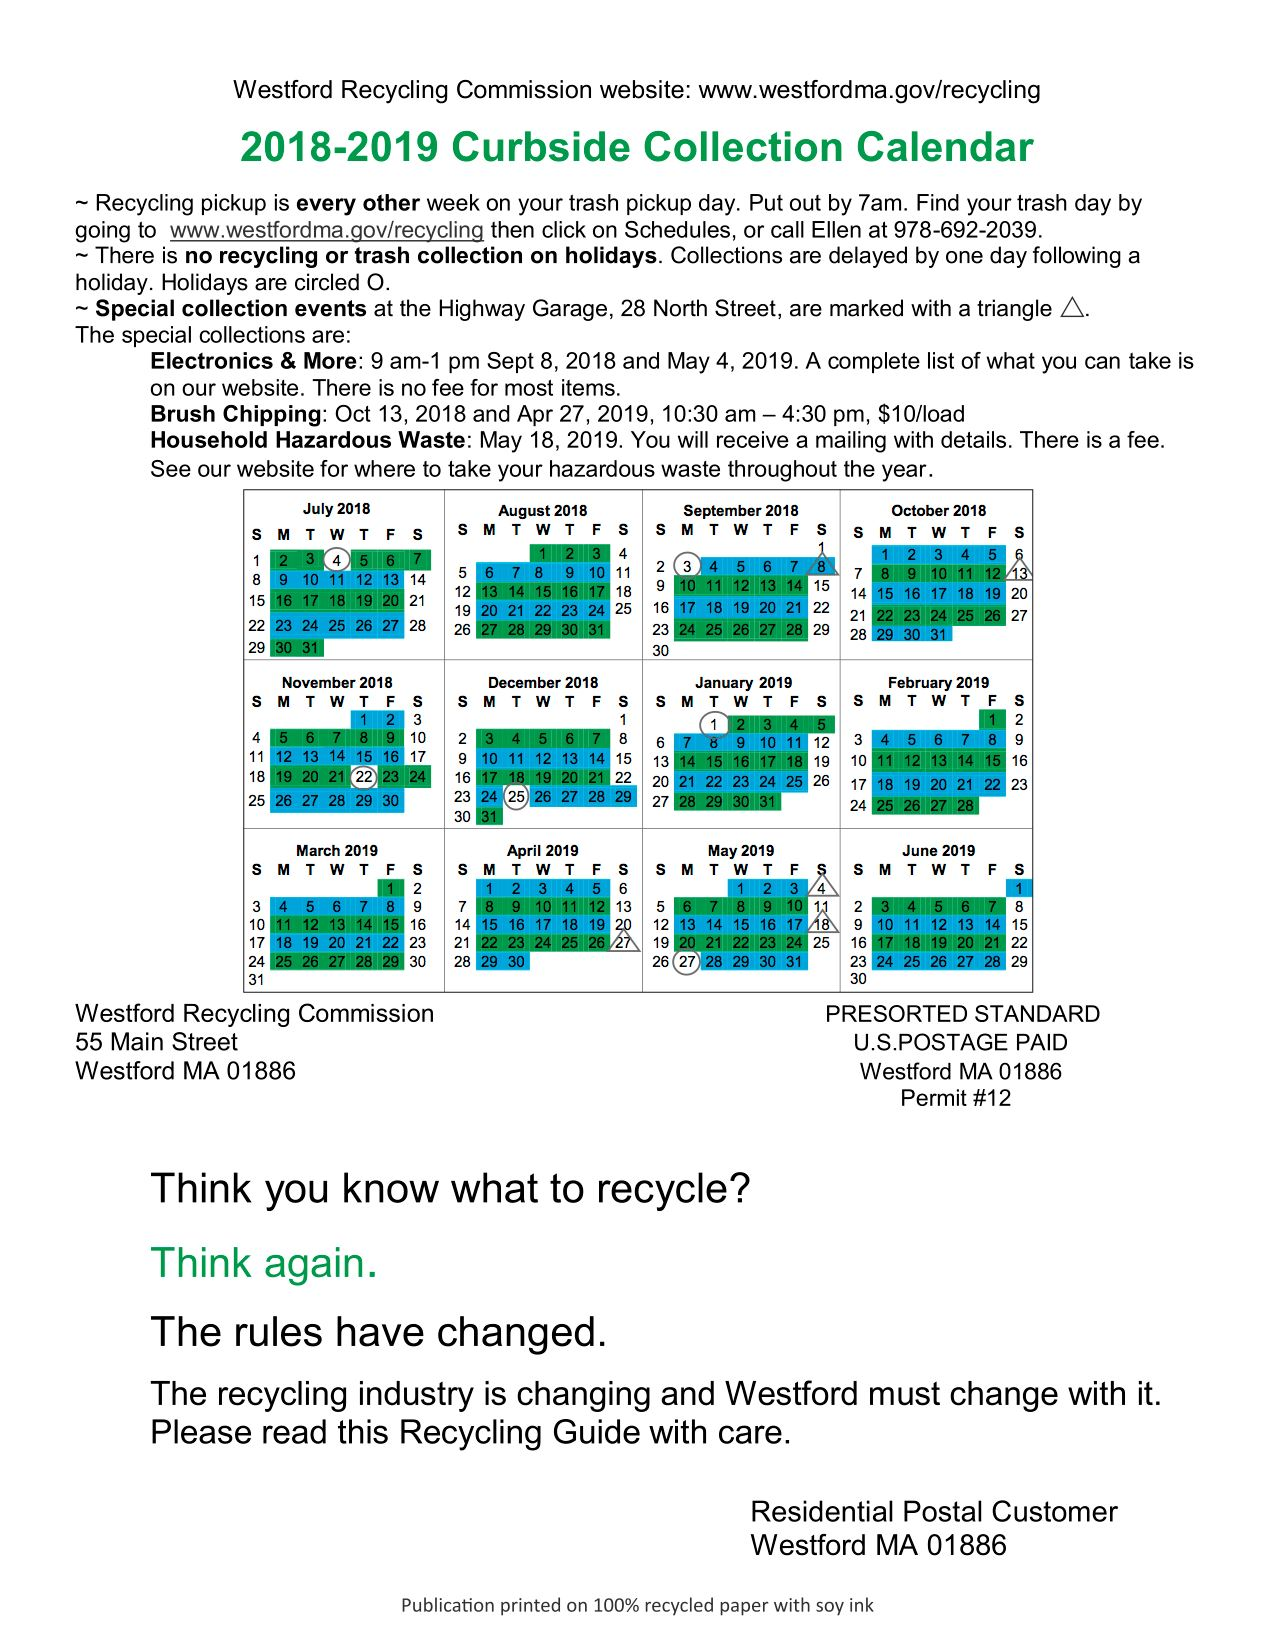 Recycling-Guide-for-FY19 Page 1